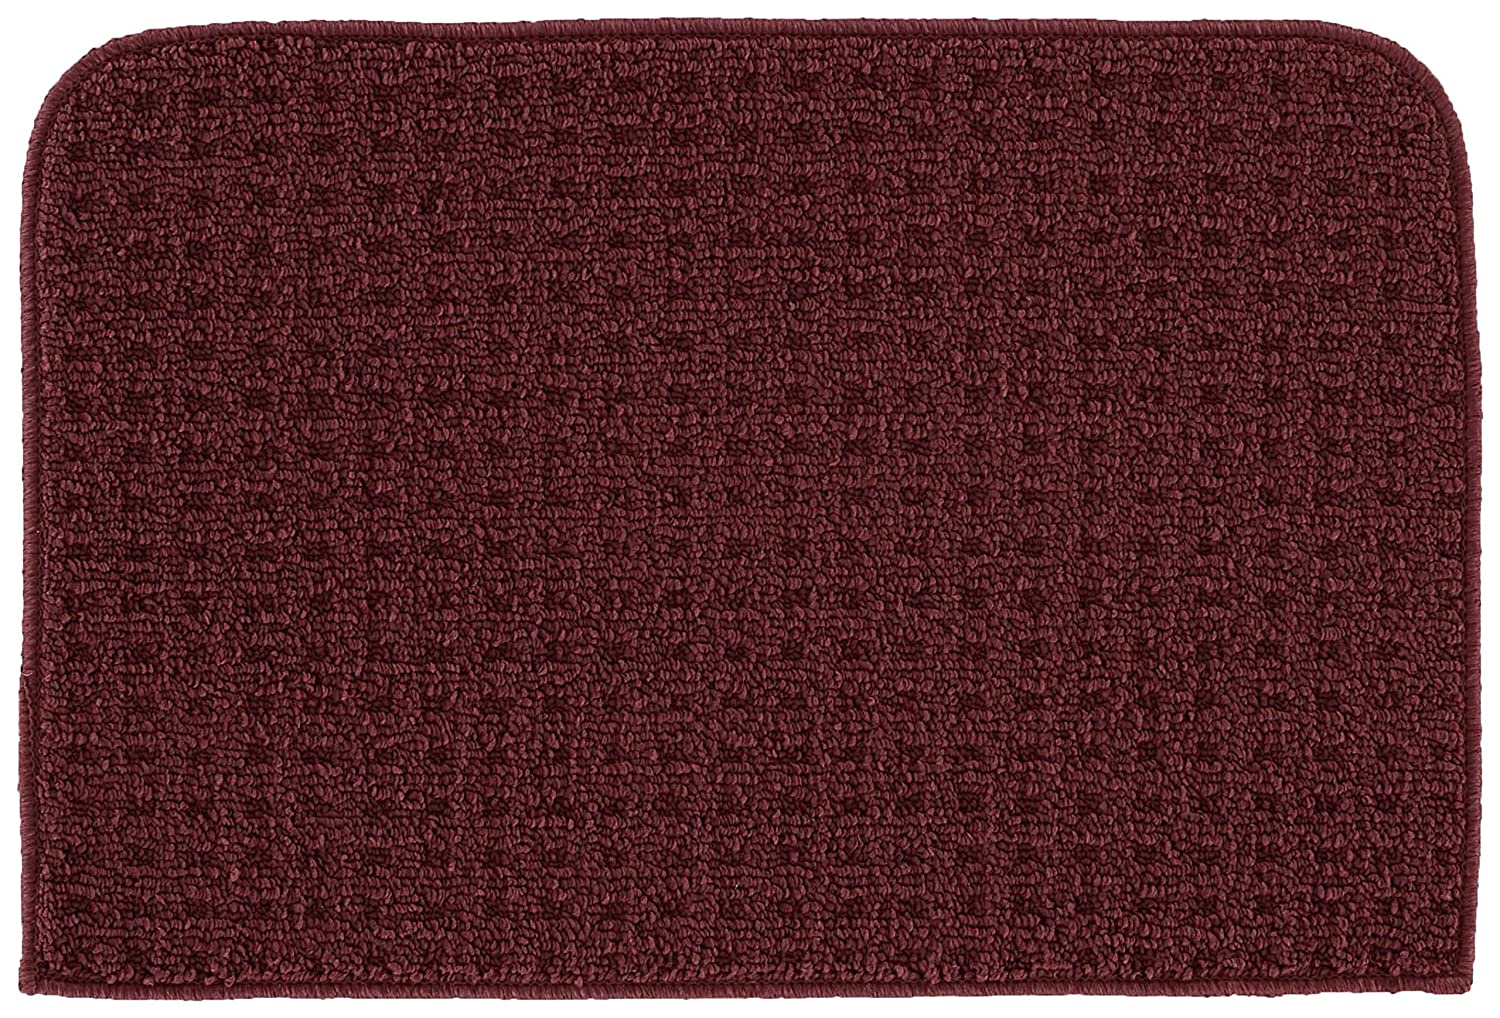 Garland Rug Herald Square Kitchen Slice Rug, 18-Inch by 30-Inch, Burgundy